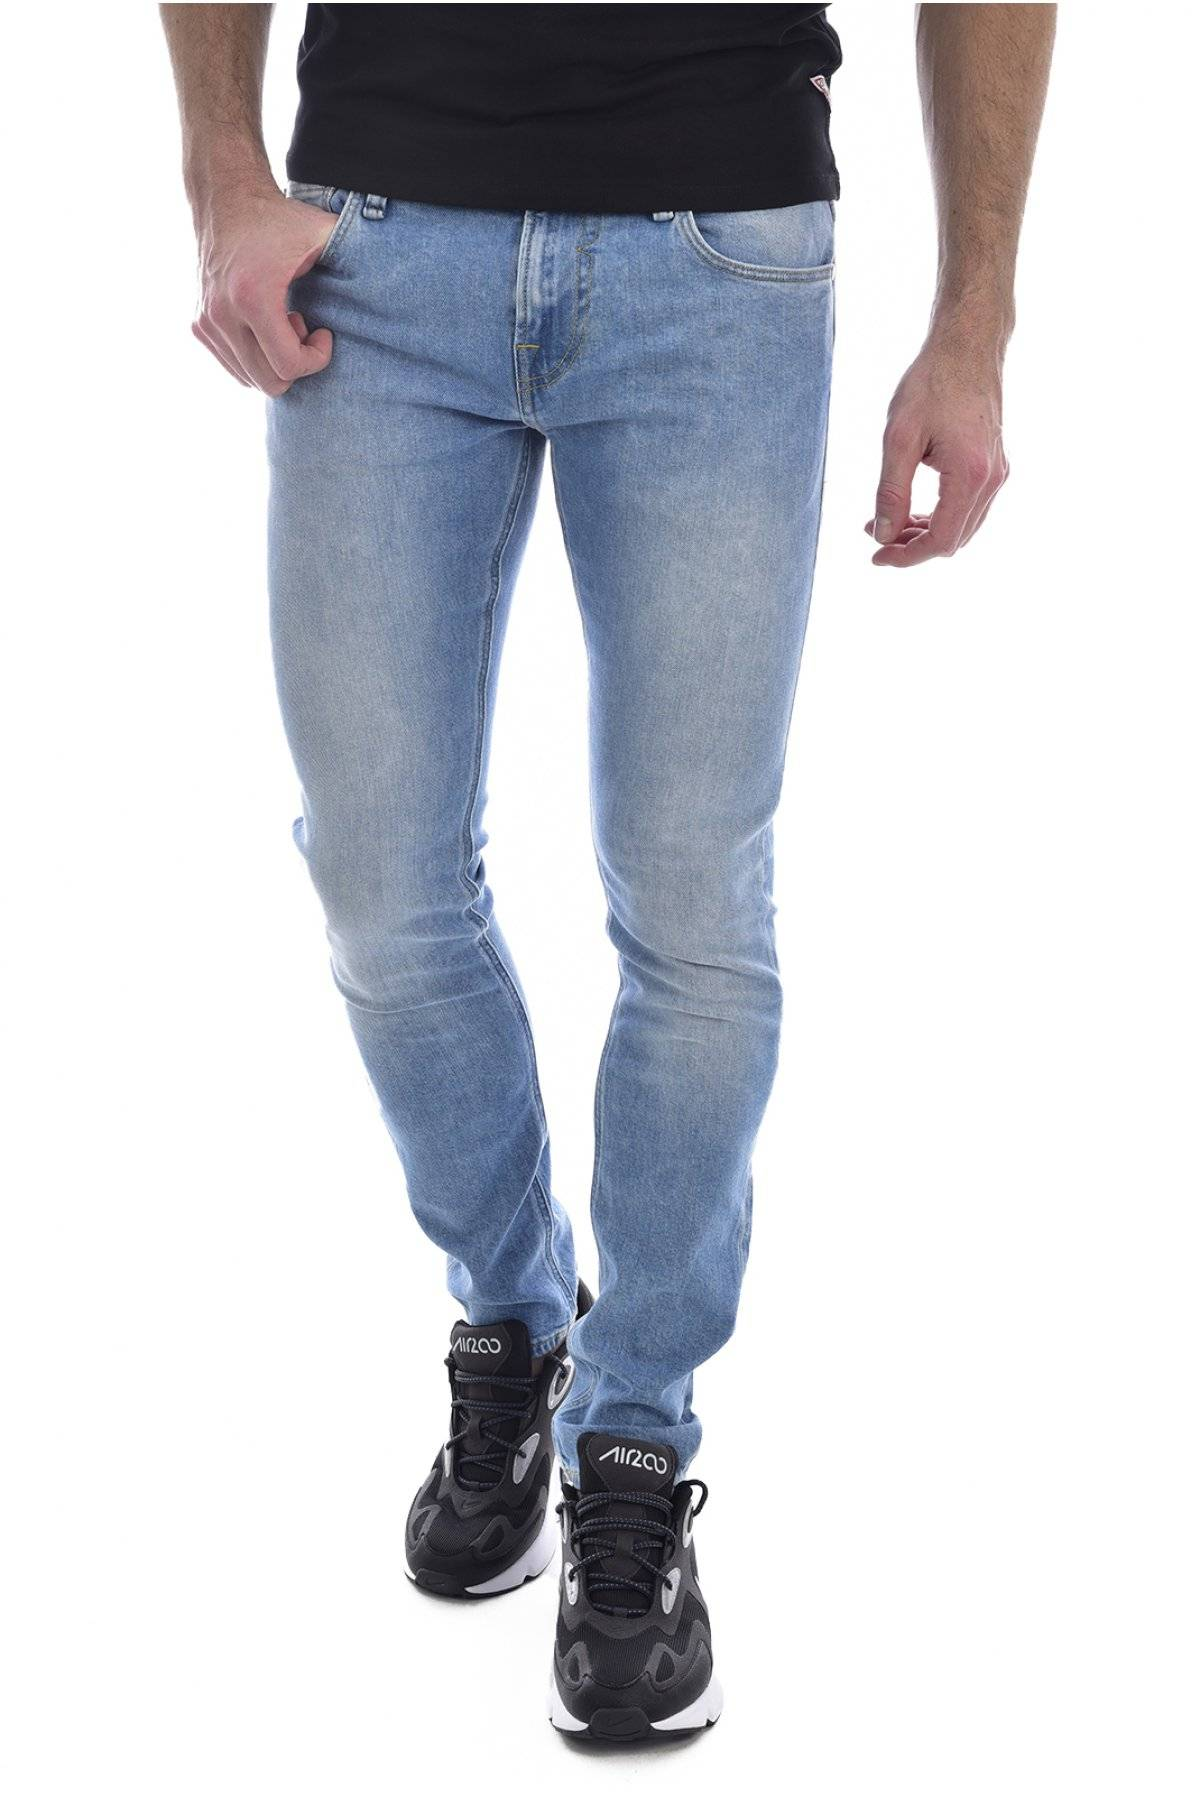 Guess jeans Jean Skinny Stretch Chris  -  Guess Jeans